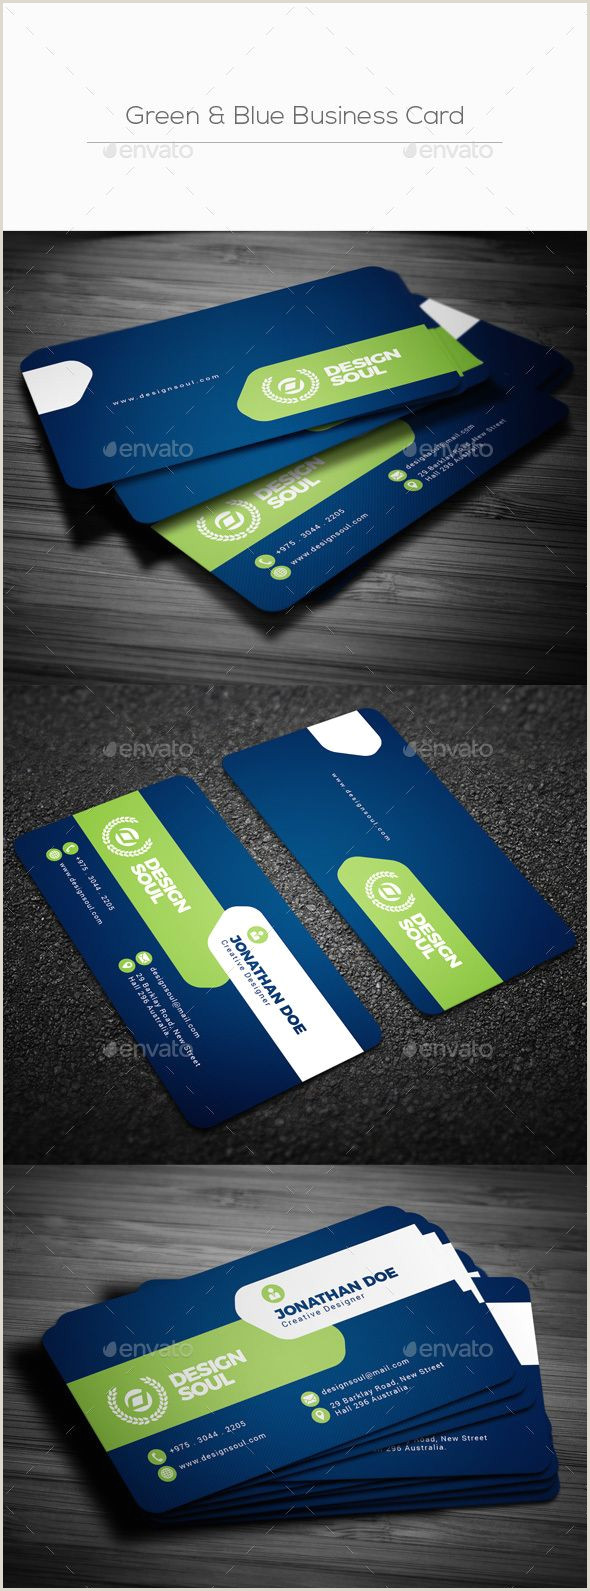 Company Business Card Green & Blue Business Card Corporate Business Cards